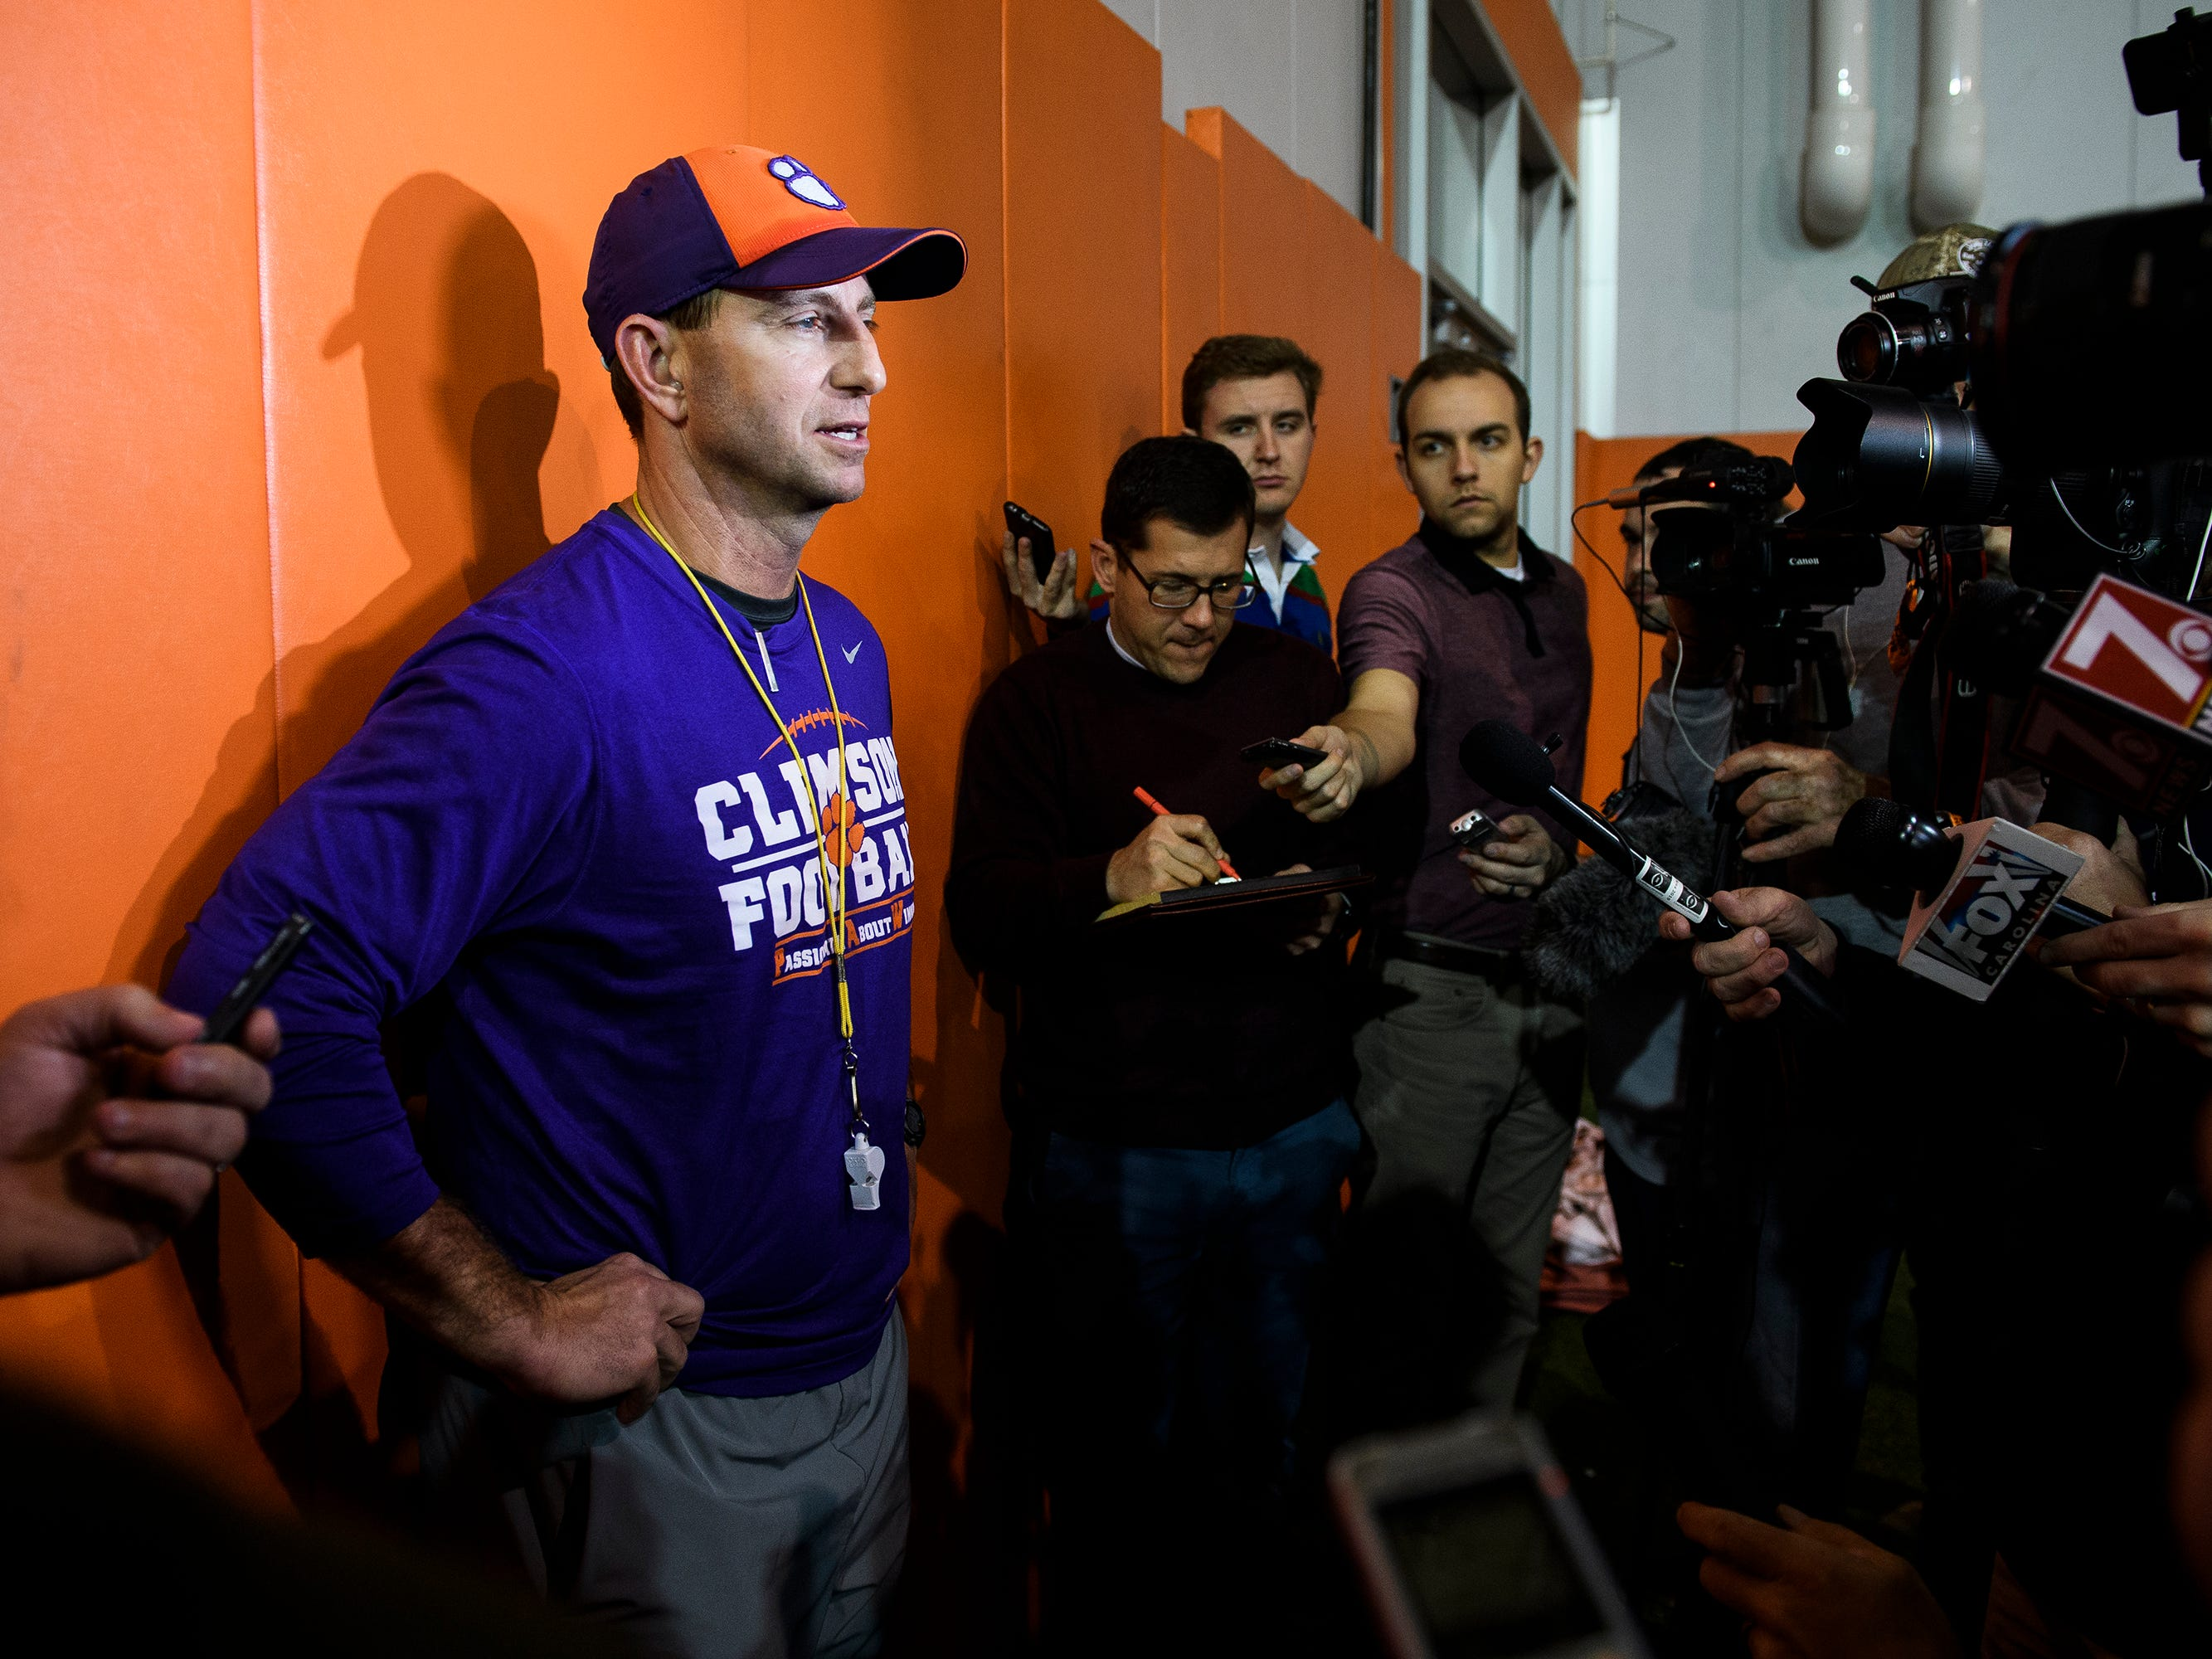 Clemson head coach Dabo Swinney speaks with members of the press after practice at the Allen Reeves Football Complex on Wednesday, Feb. 27, 2019.